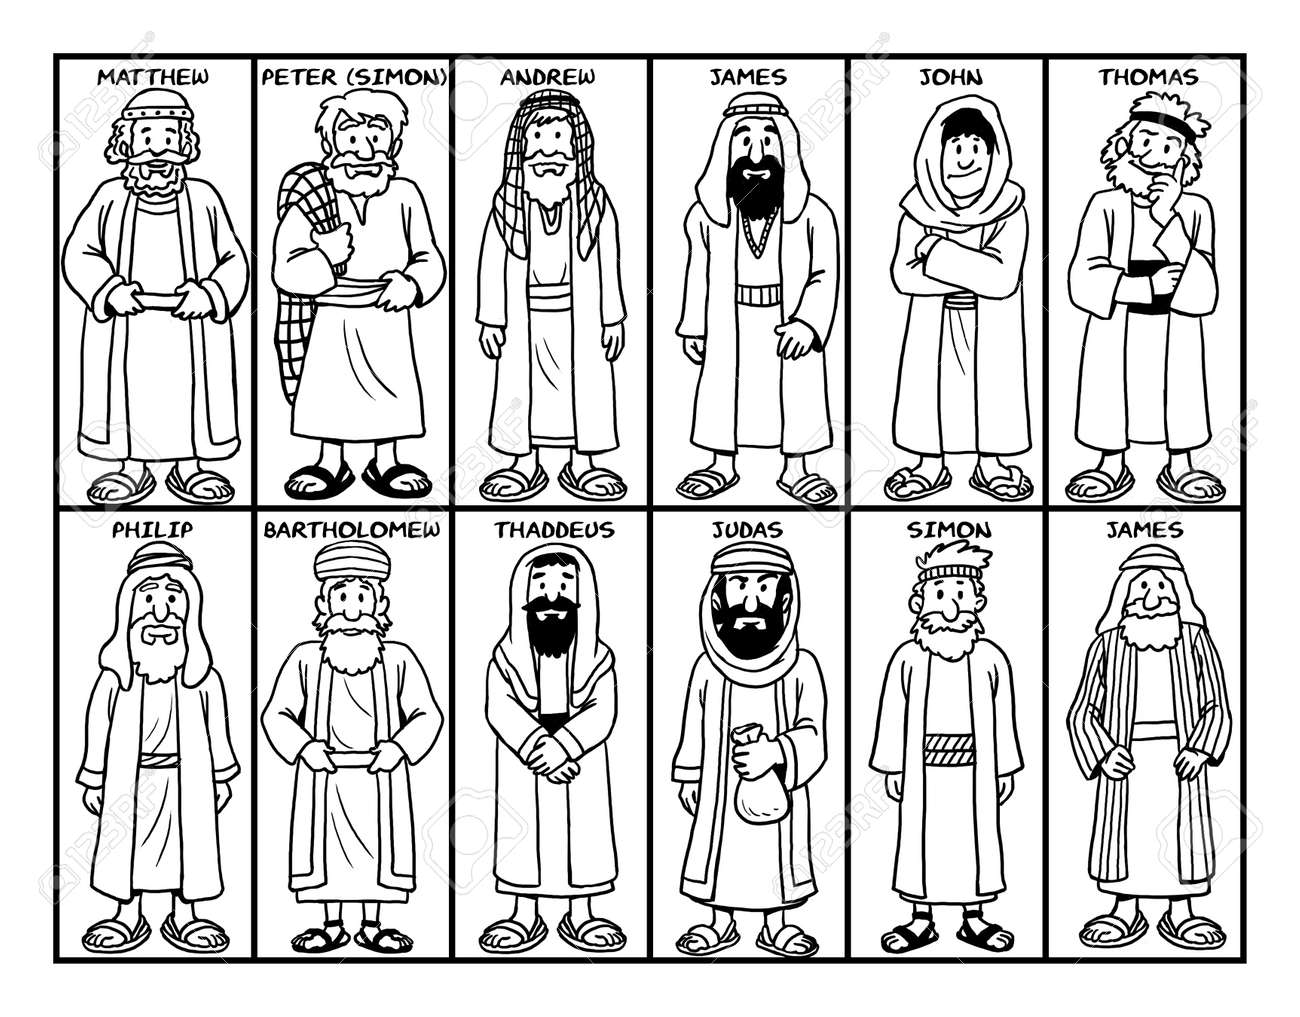 12 Disciples Coloring Sheet 100 Images 26 Beautiful Image 12 Apostles Coloring Page The 12 Disciples Coloring Icharacter The Parables Pages Are For Stories Of Jesus Nahzldylbjf Coloring Sheets Bible Activities For Club For Jesus